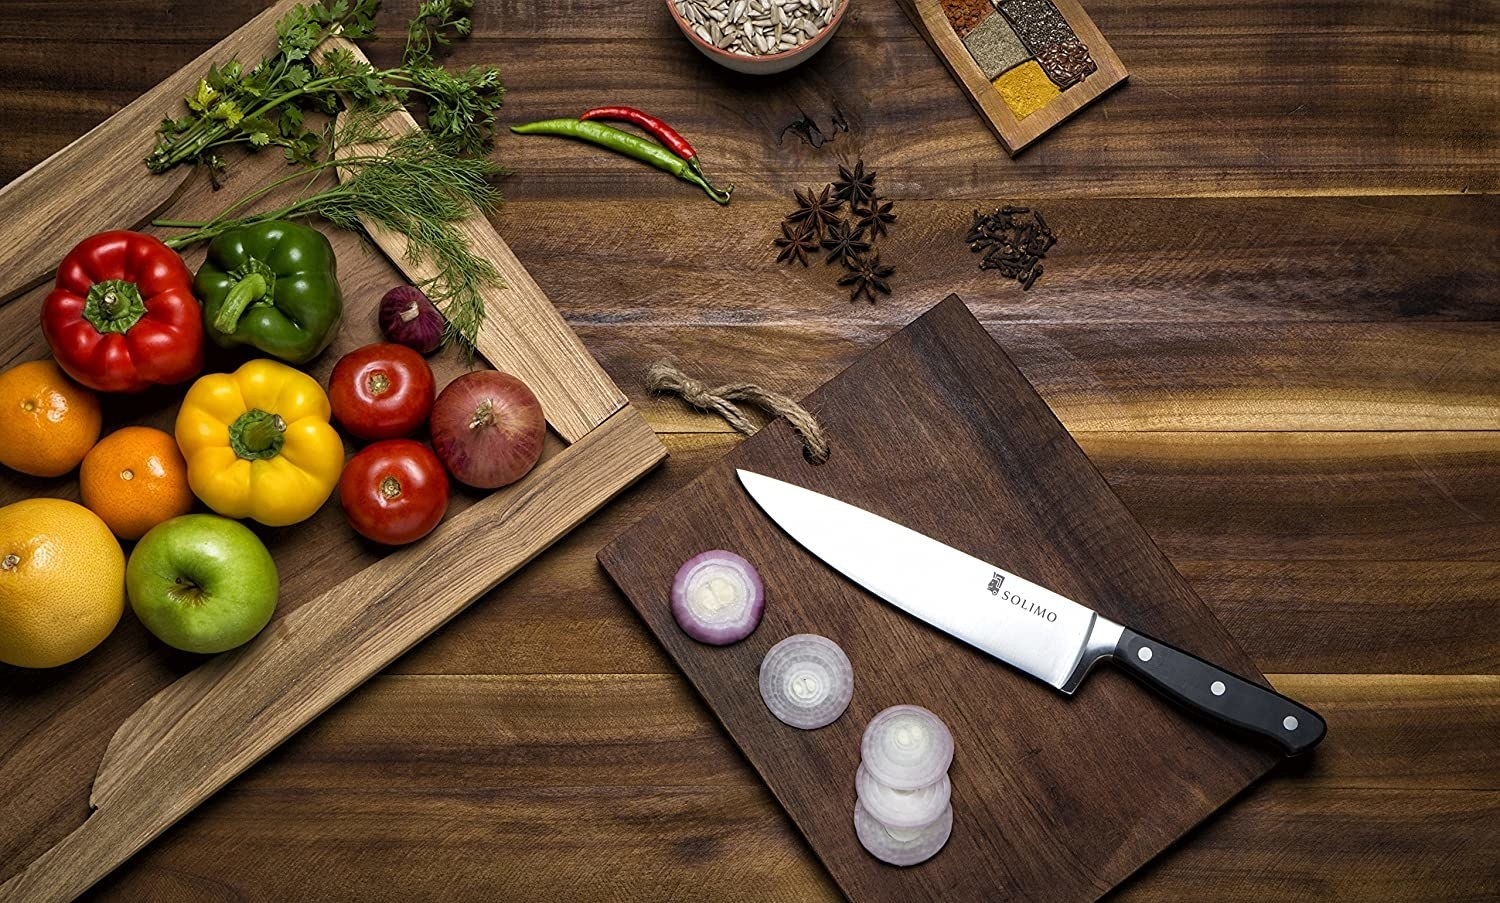 A chef's knife with vegetables around it